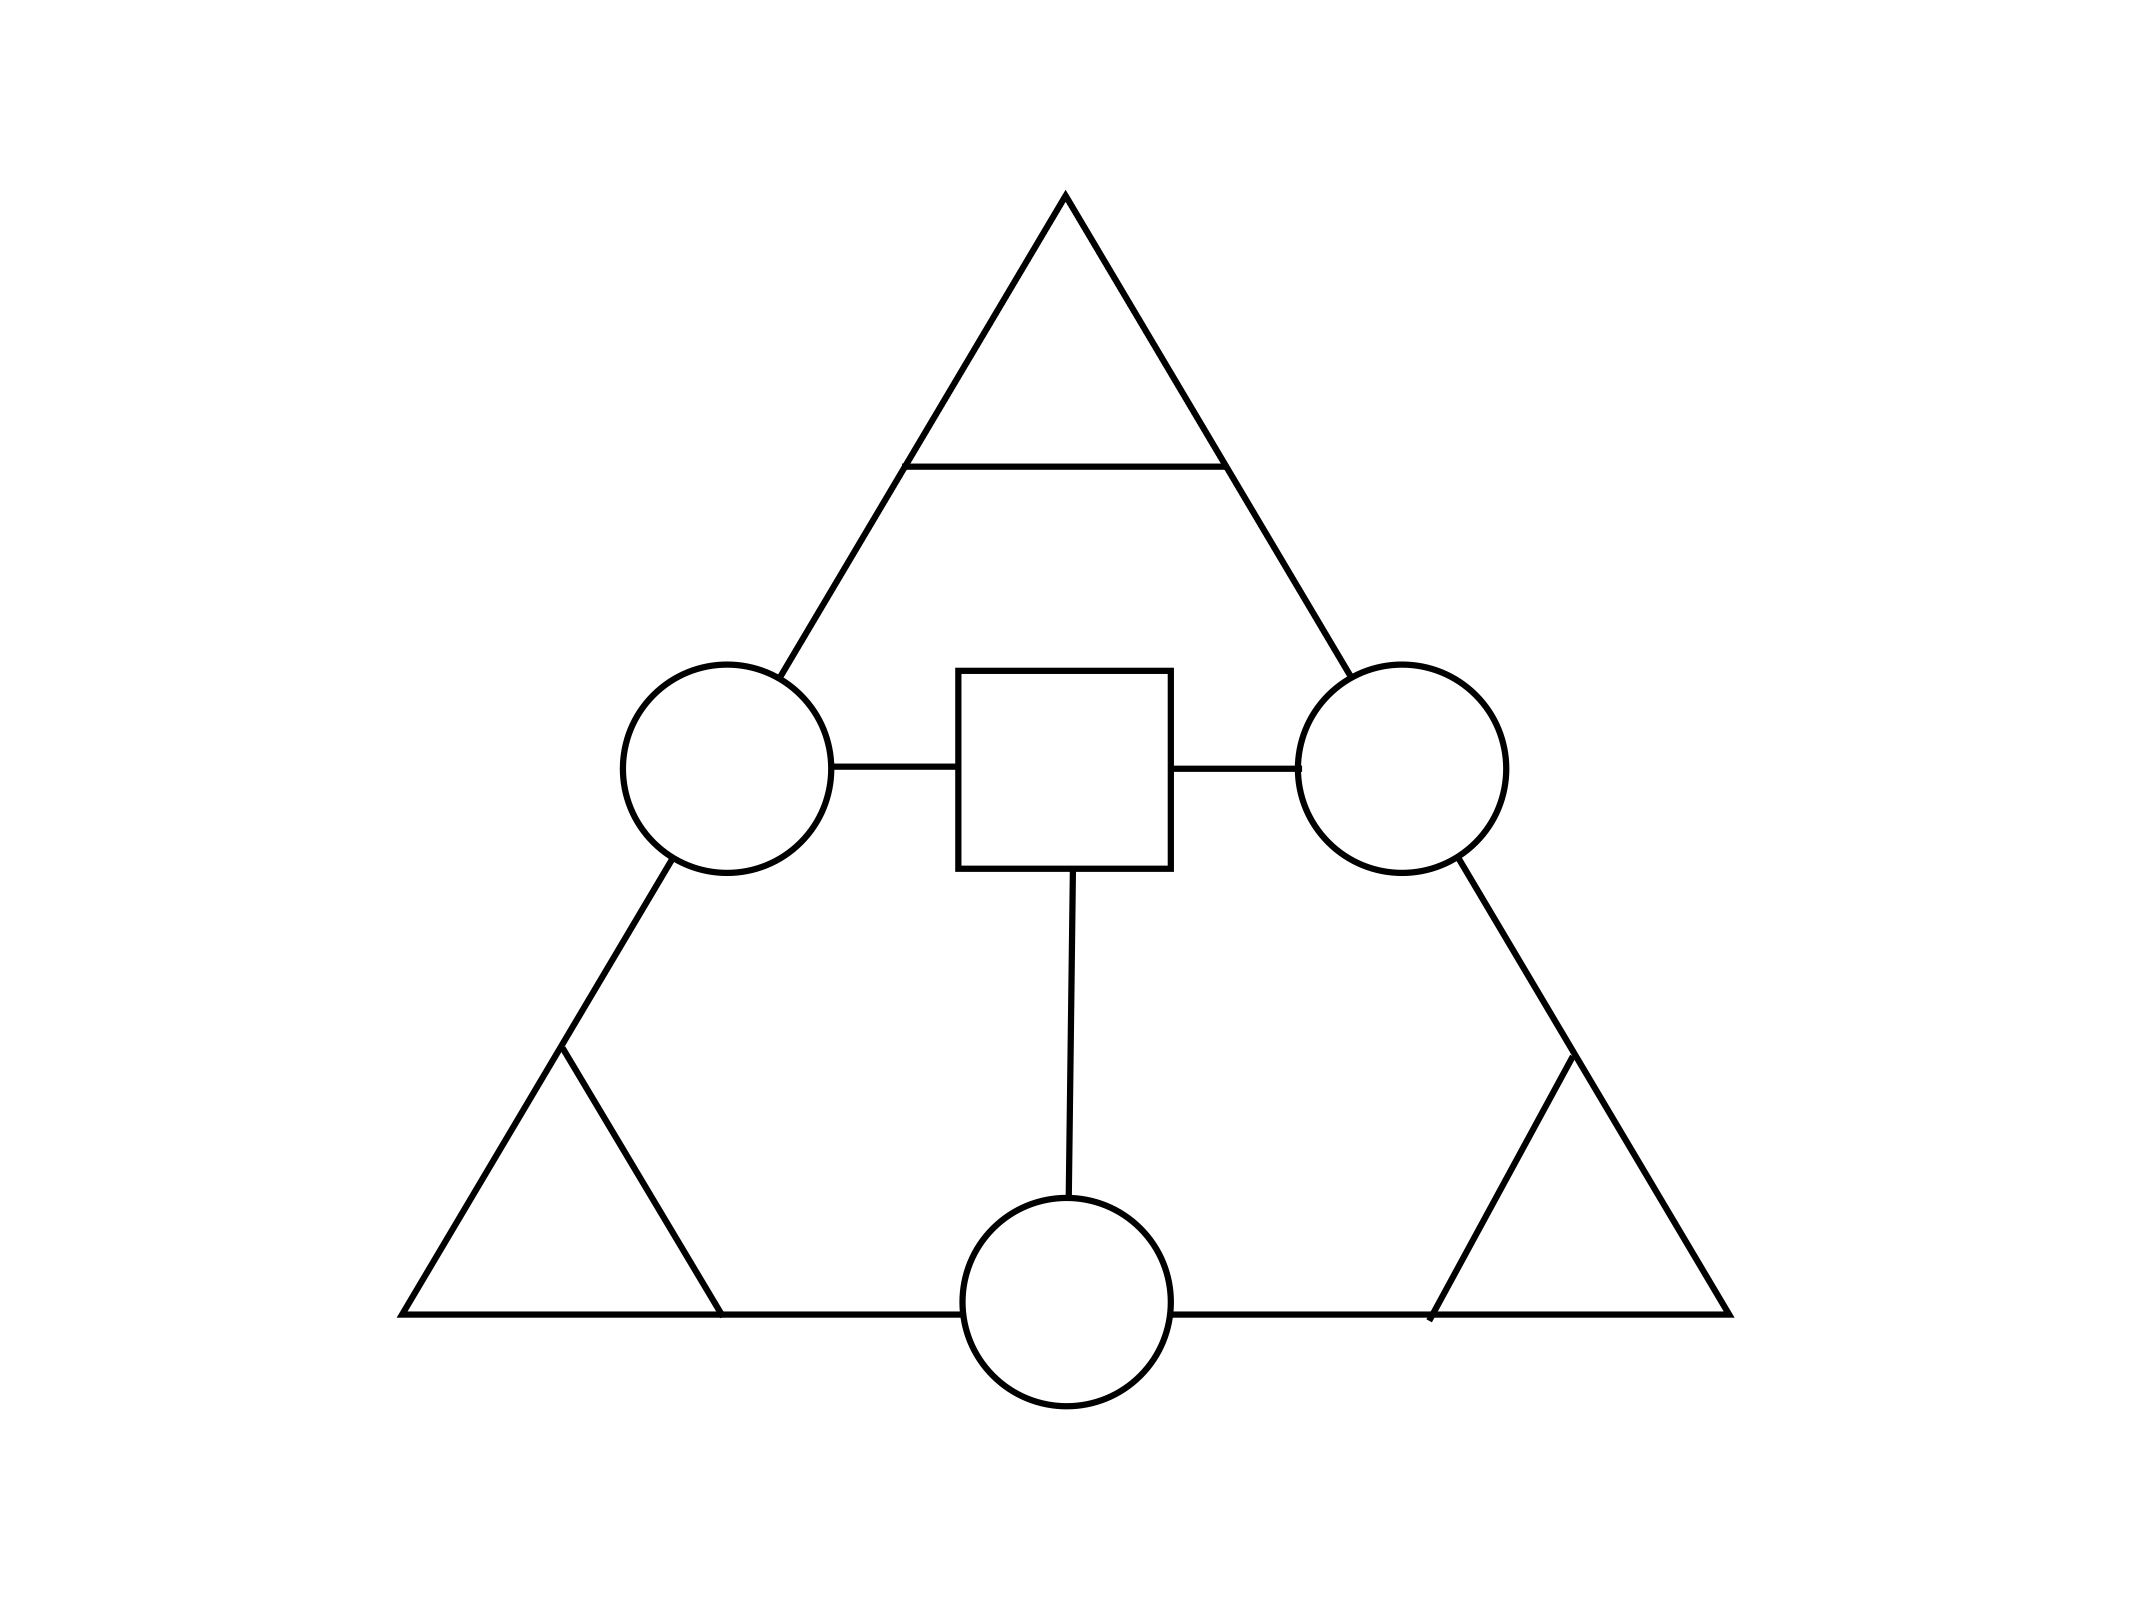 Arithmagons are polygons with missing values at either the